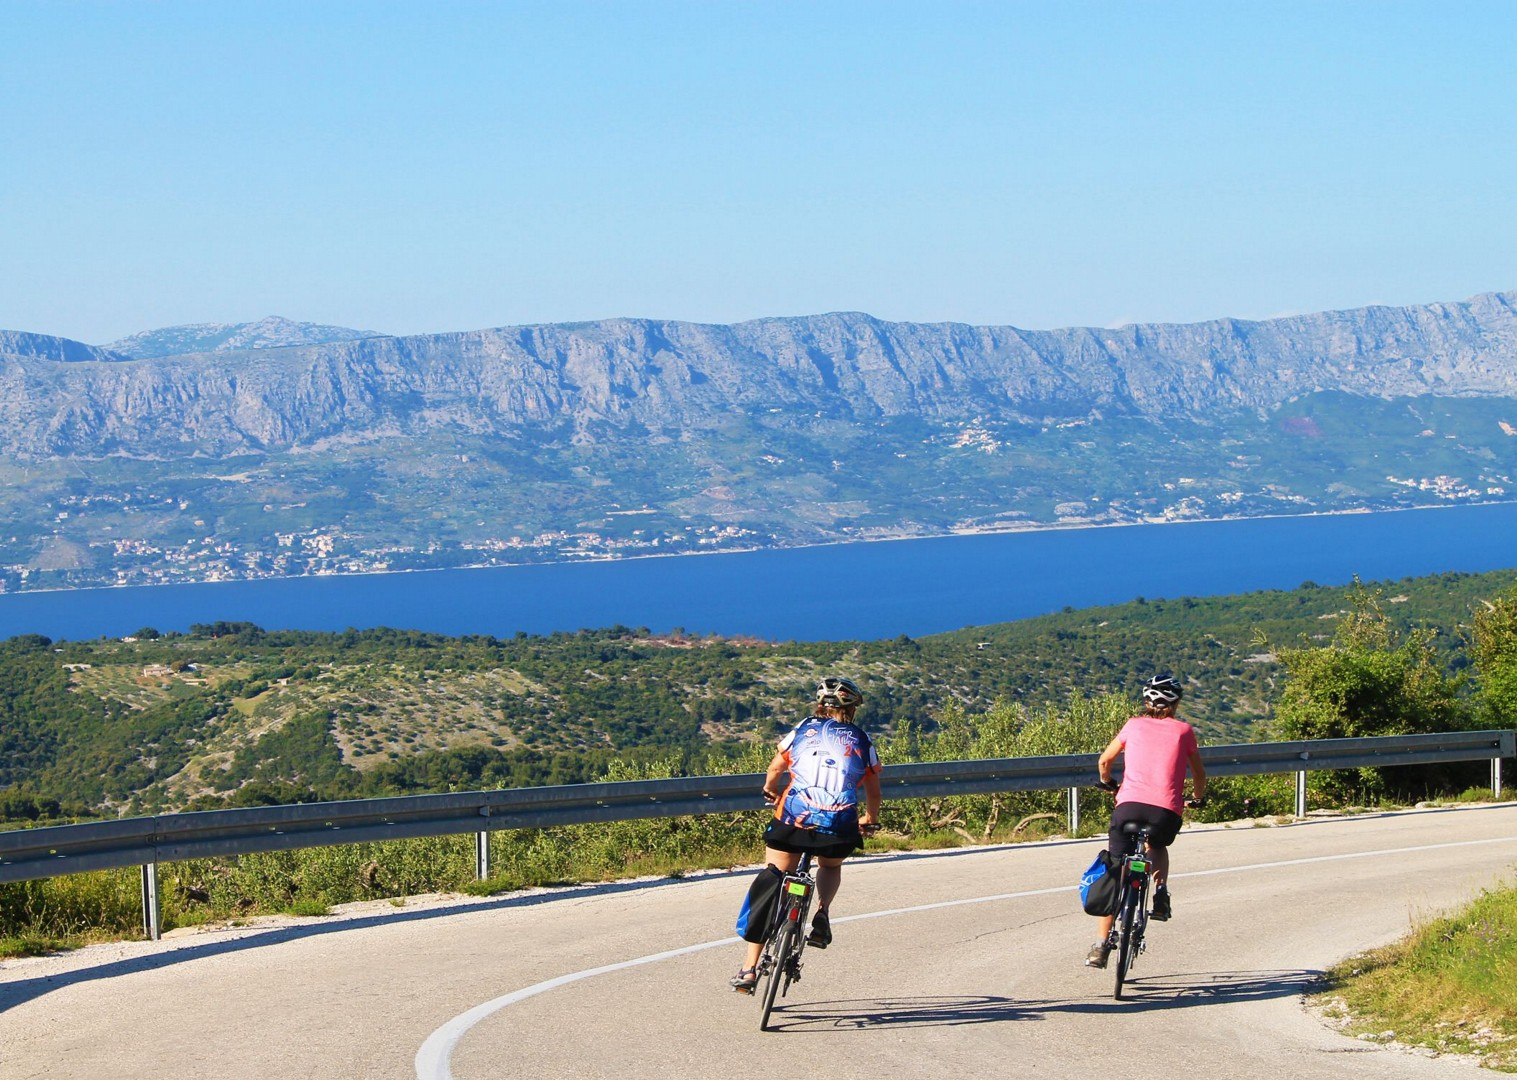 southern-dalmatia-leisurely-cycling-holiday.jpg - Croatia - Southern Dalmatia - Bike and Boat Holiday - Leisure Cycling